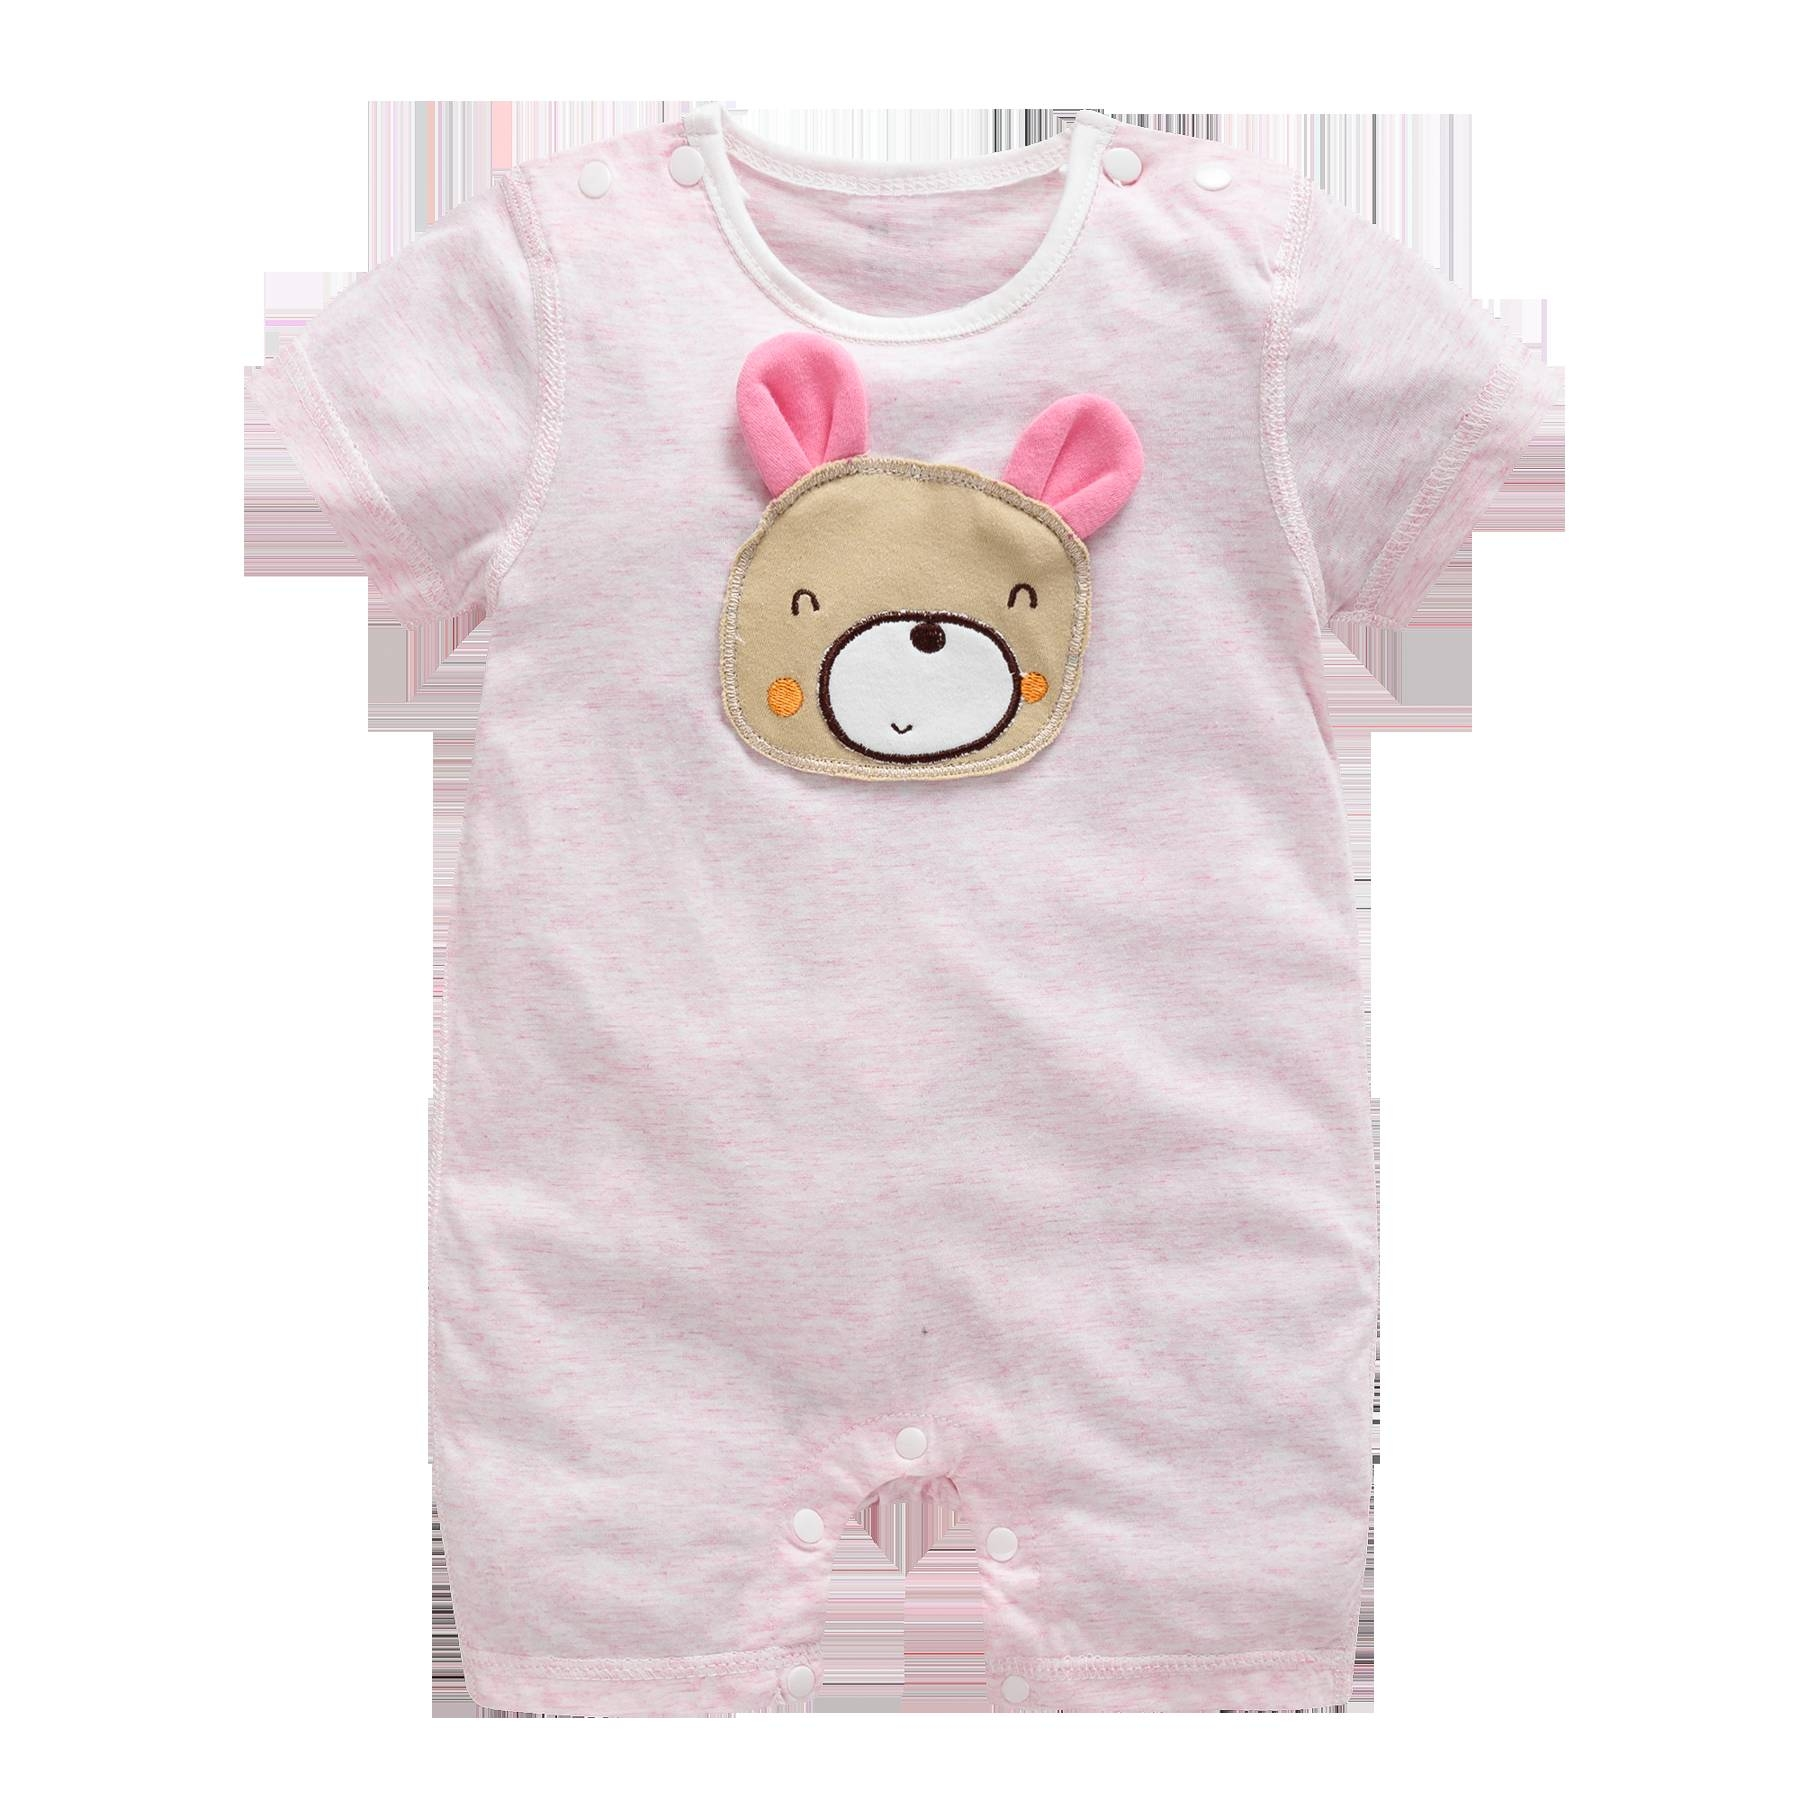 a6f9ab963 Generic Summer new baby short-sleeved cotton clothing